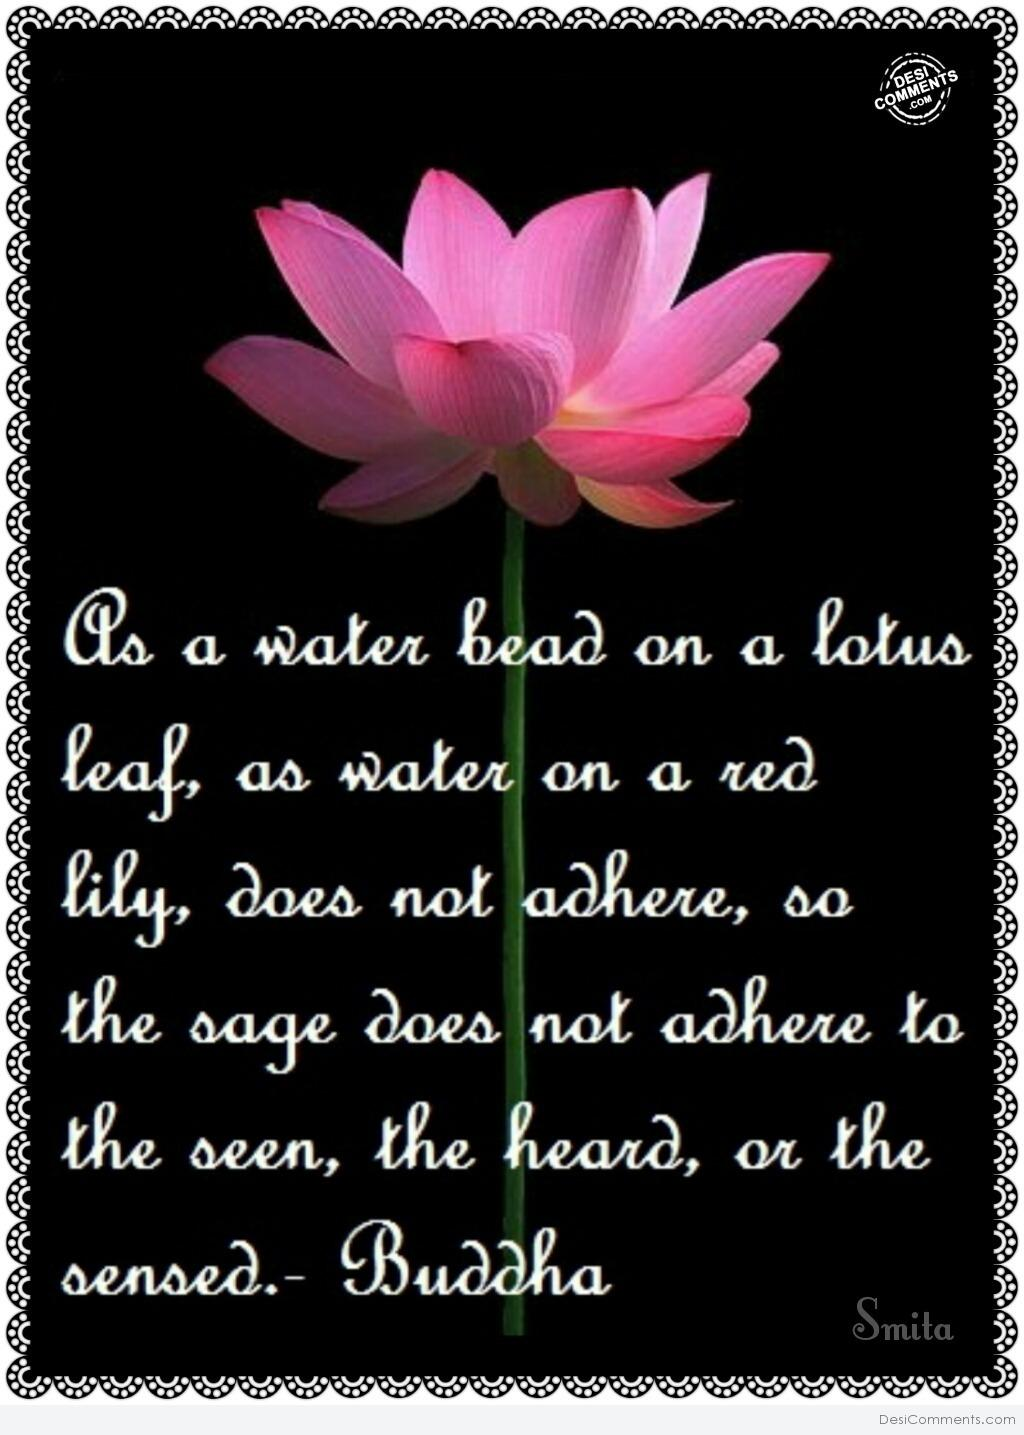 Lotus flower poems quotes images flower decoration ideas as a water bead on a lotus flower desicomments as a water bead on a lotus izmirmasajfo